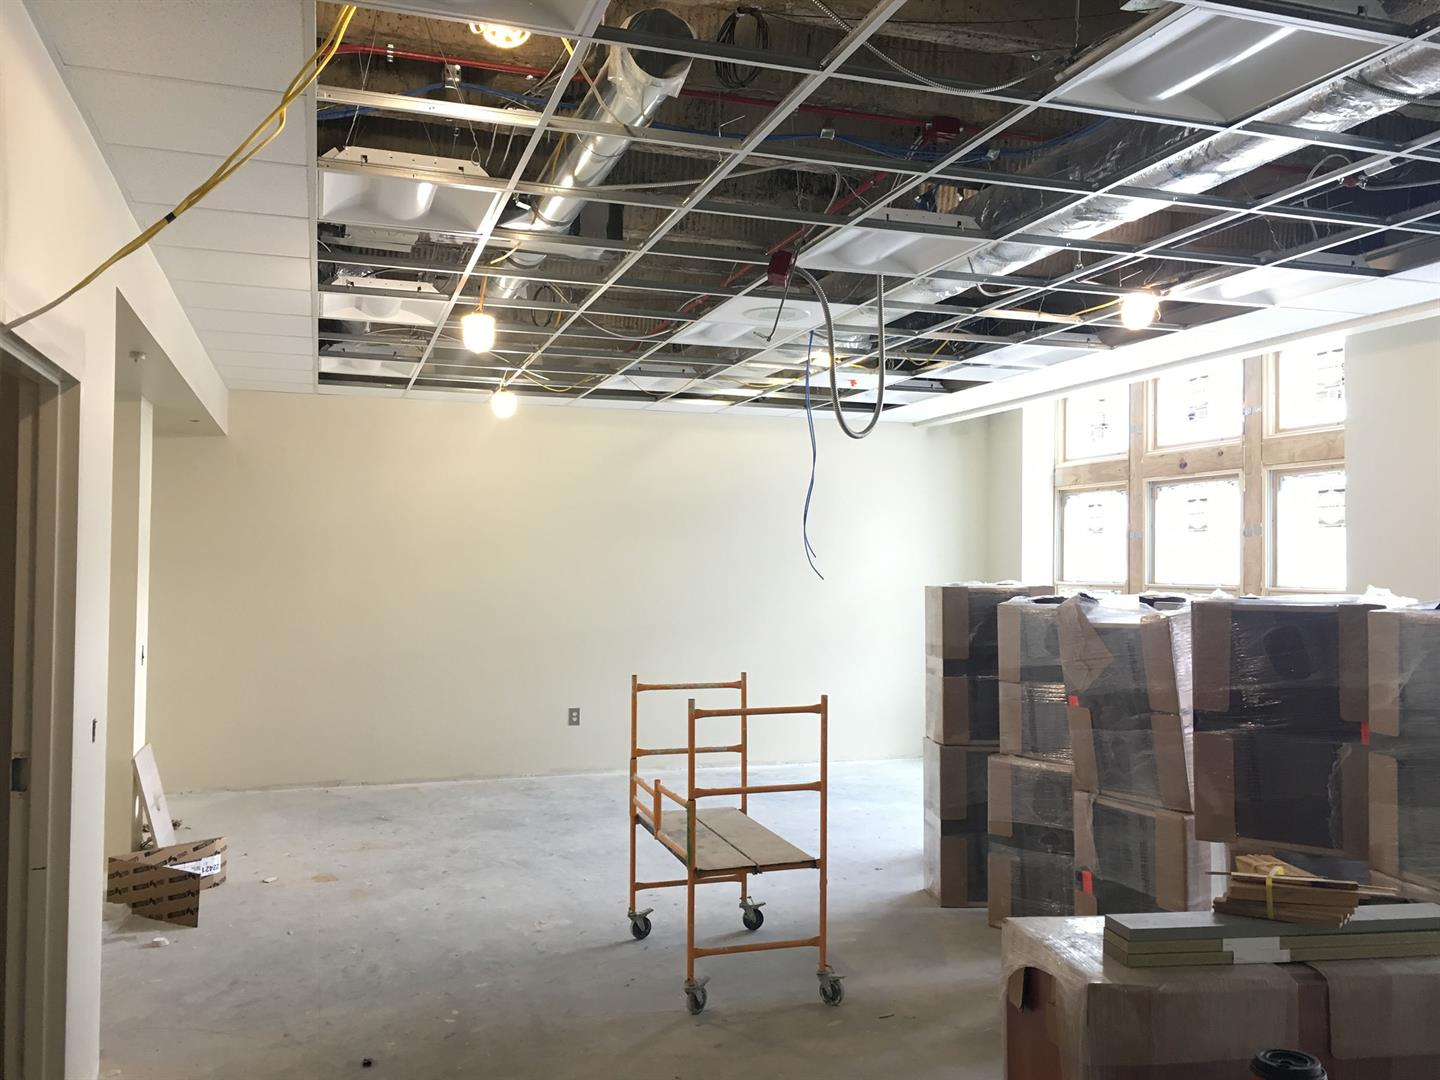 2nd Floor Ceiling, Lights, Speaker & Sprinkler Installation